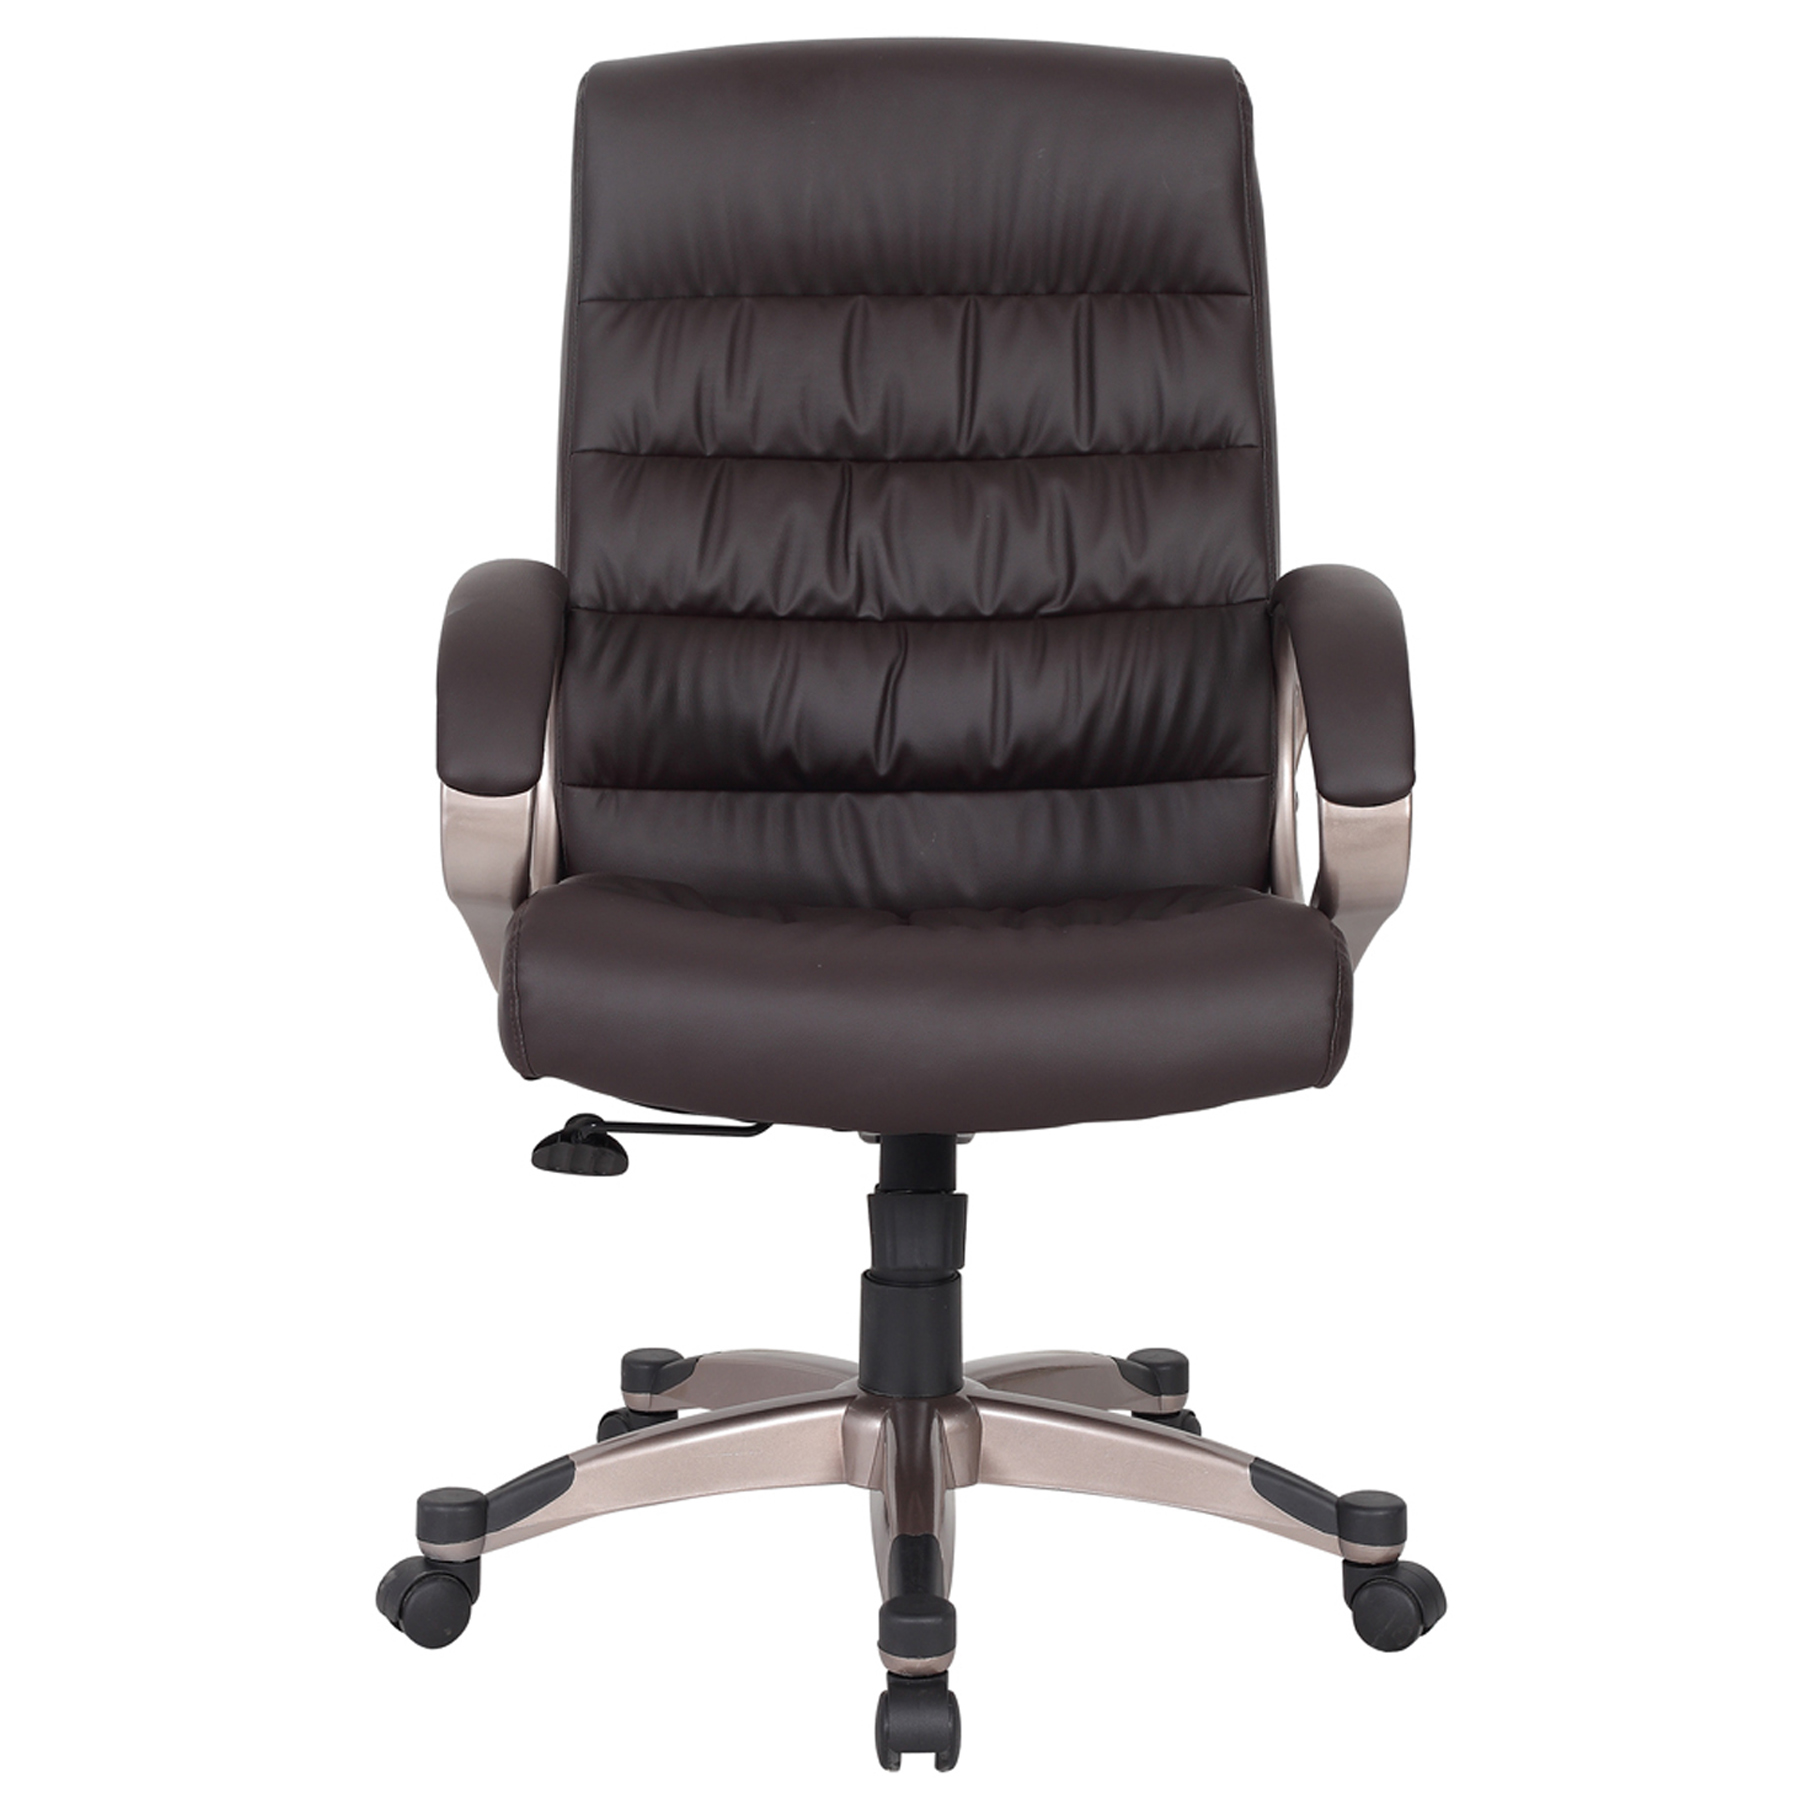 Plush Office Chair Plush Leather Chair Kmart